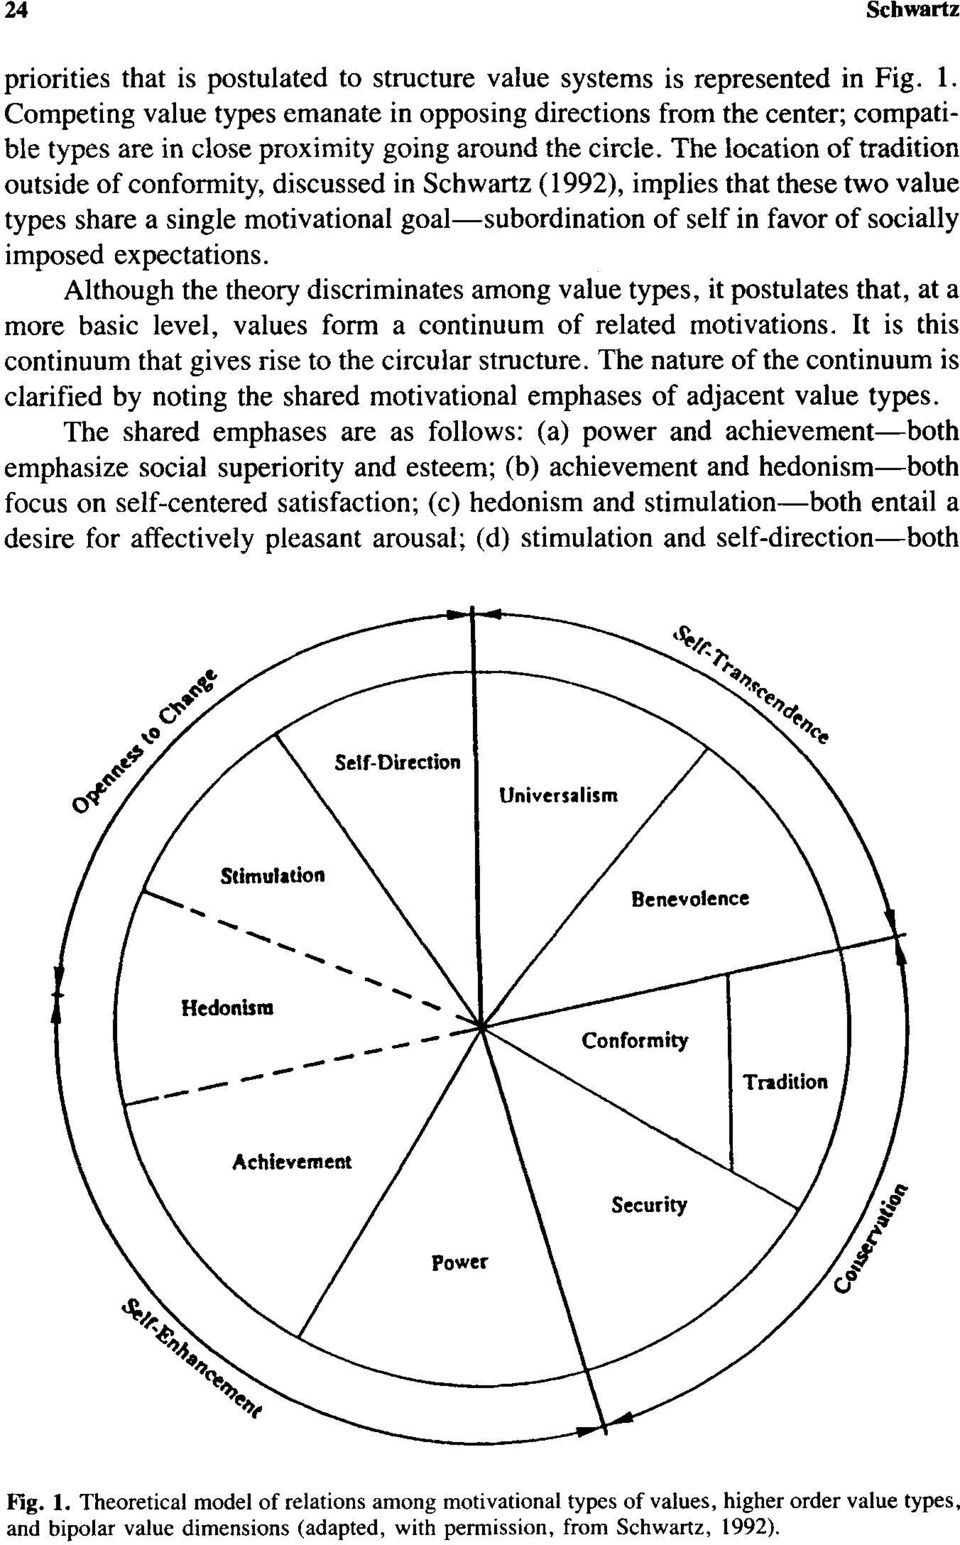 he location of tradition outside of conformity, discussed in chwartz (1992), implies that these two value types share a single motivational goal-subordination of self in favor of socially imposed